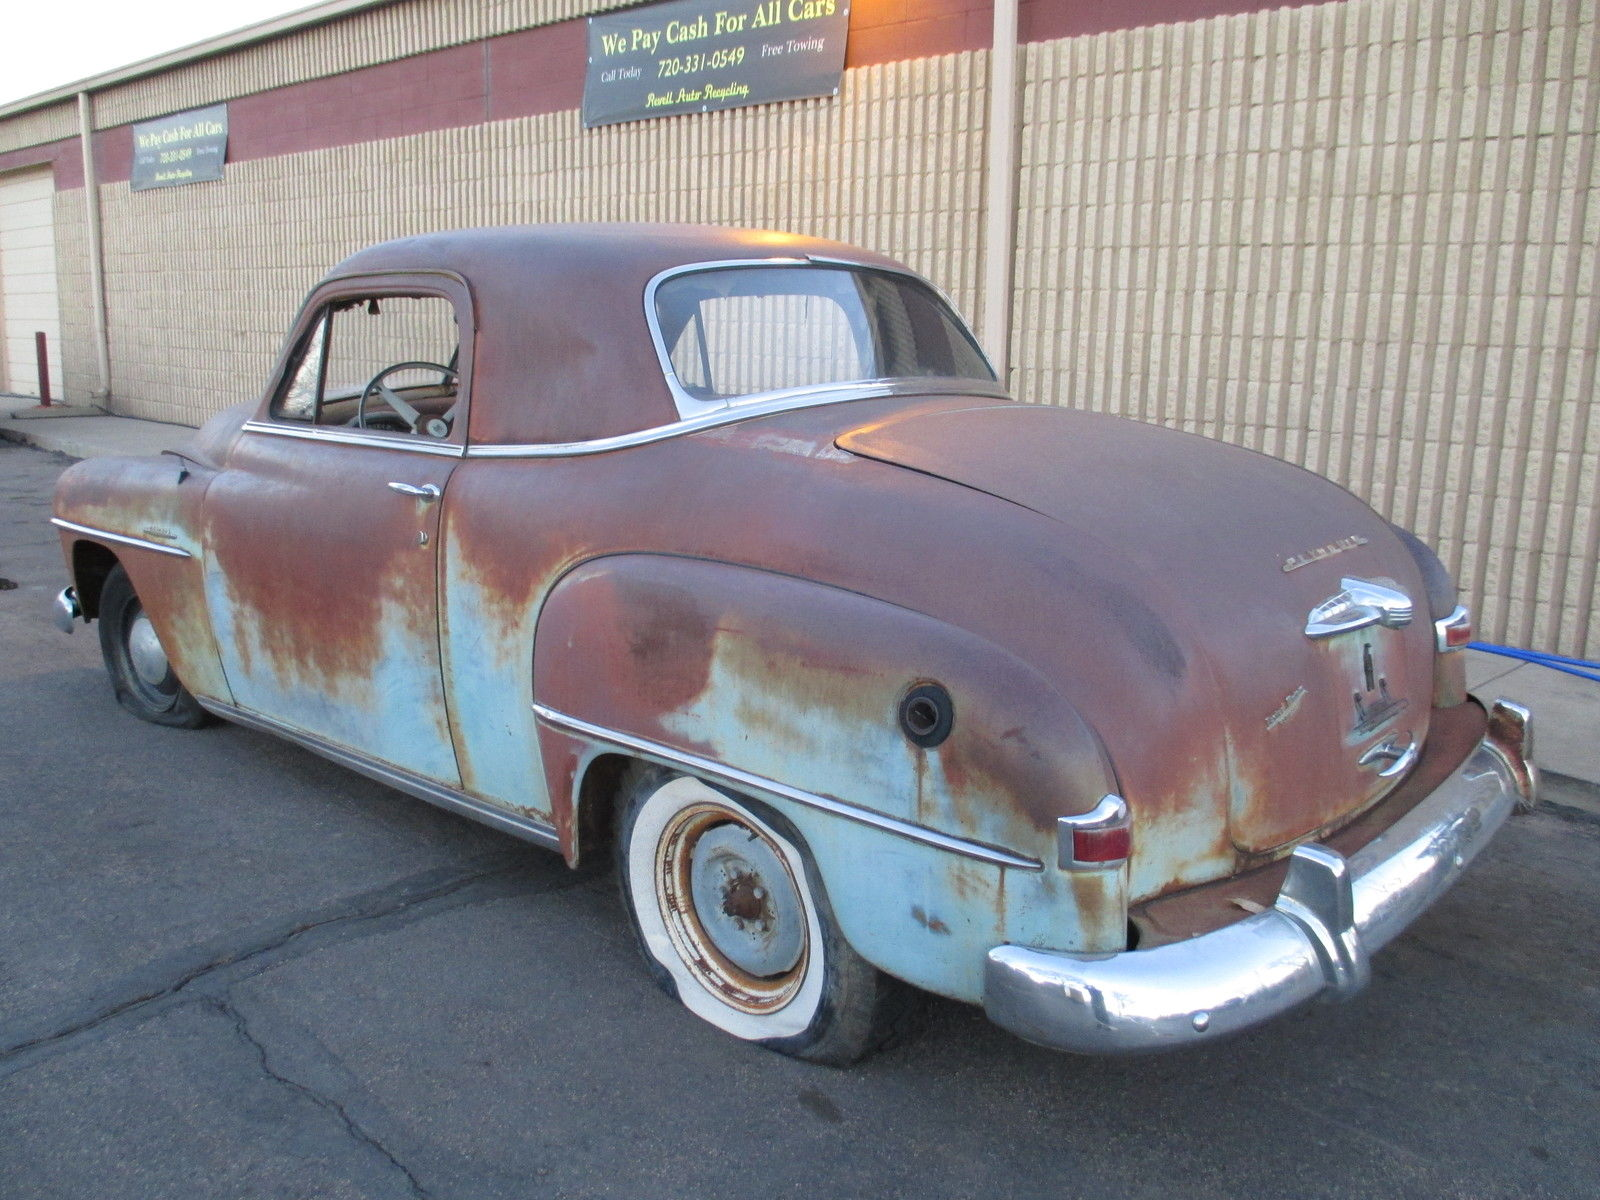 hight resolution of 1951 plymouth concord 2dr business coupe 3 window dodge rat hot rod gasser chop